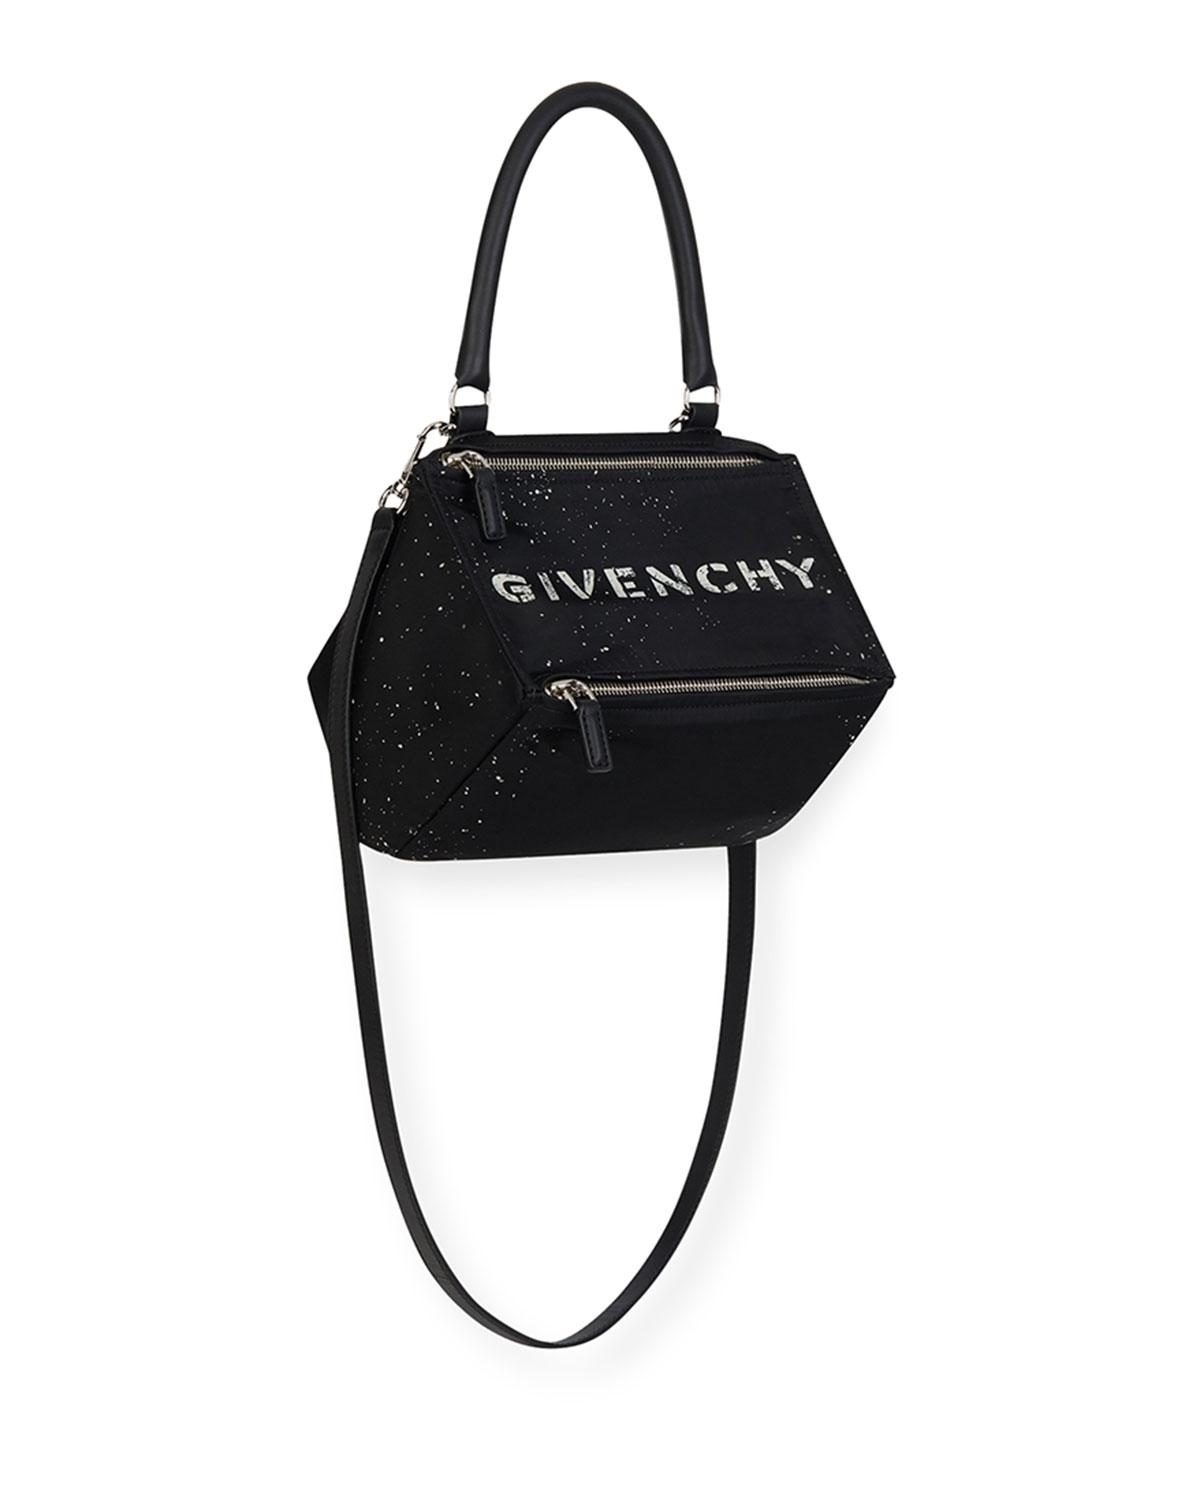 6dd95e902977 Lyst - Givenchy Small Pandora Bag in Black